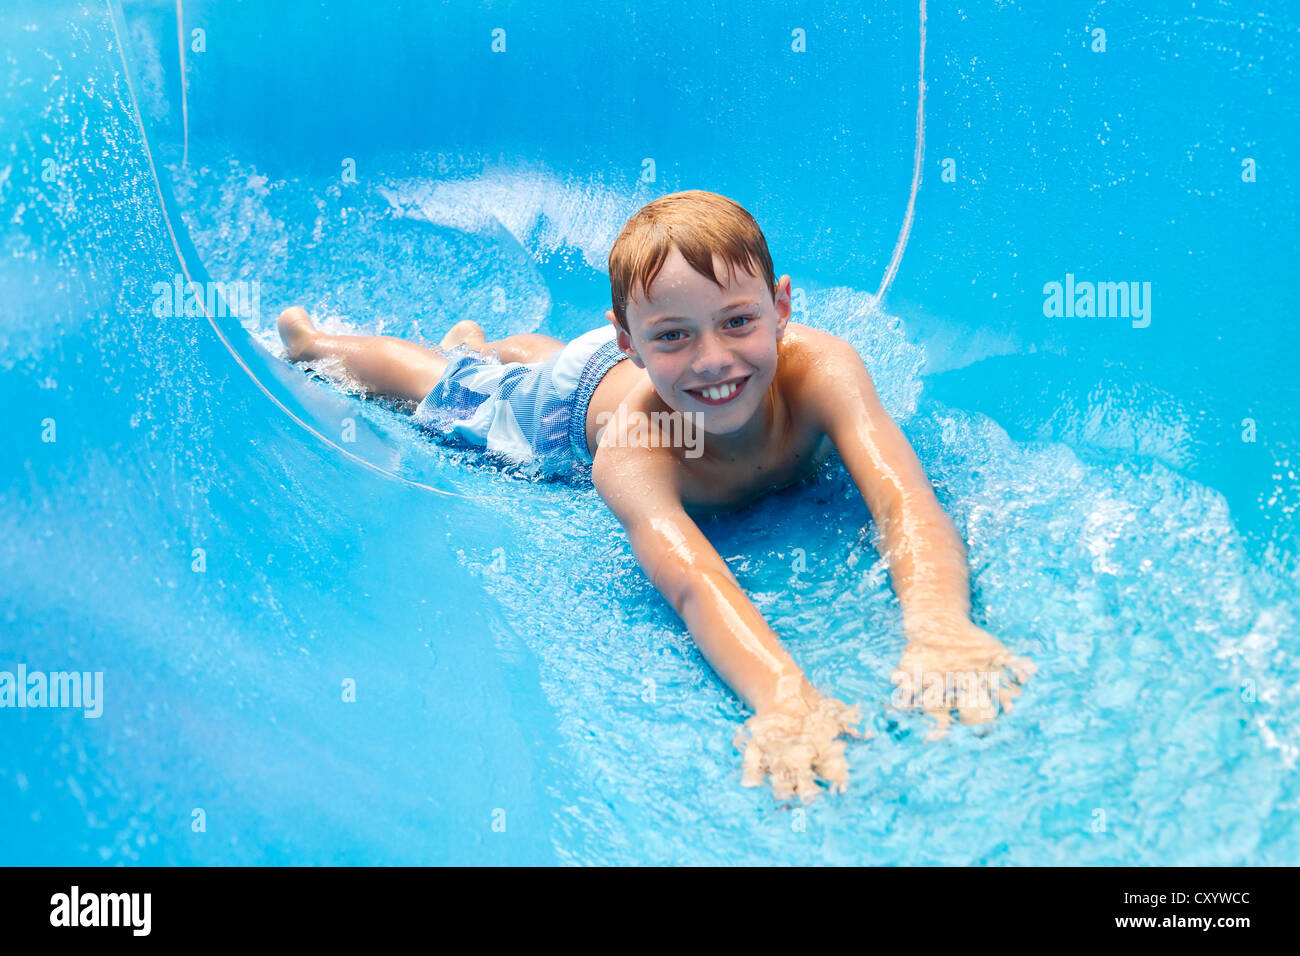 Boy, 10 years, on a water slide at the outdoor pool - Stock Image